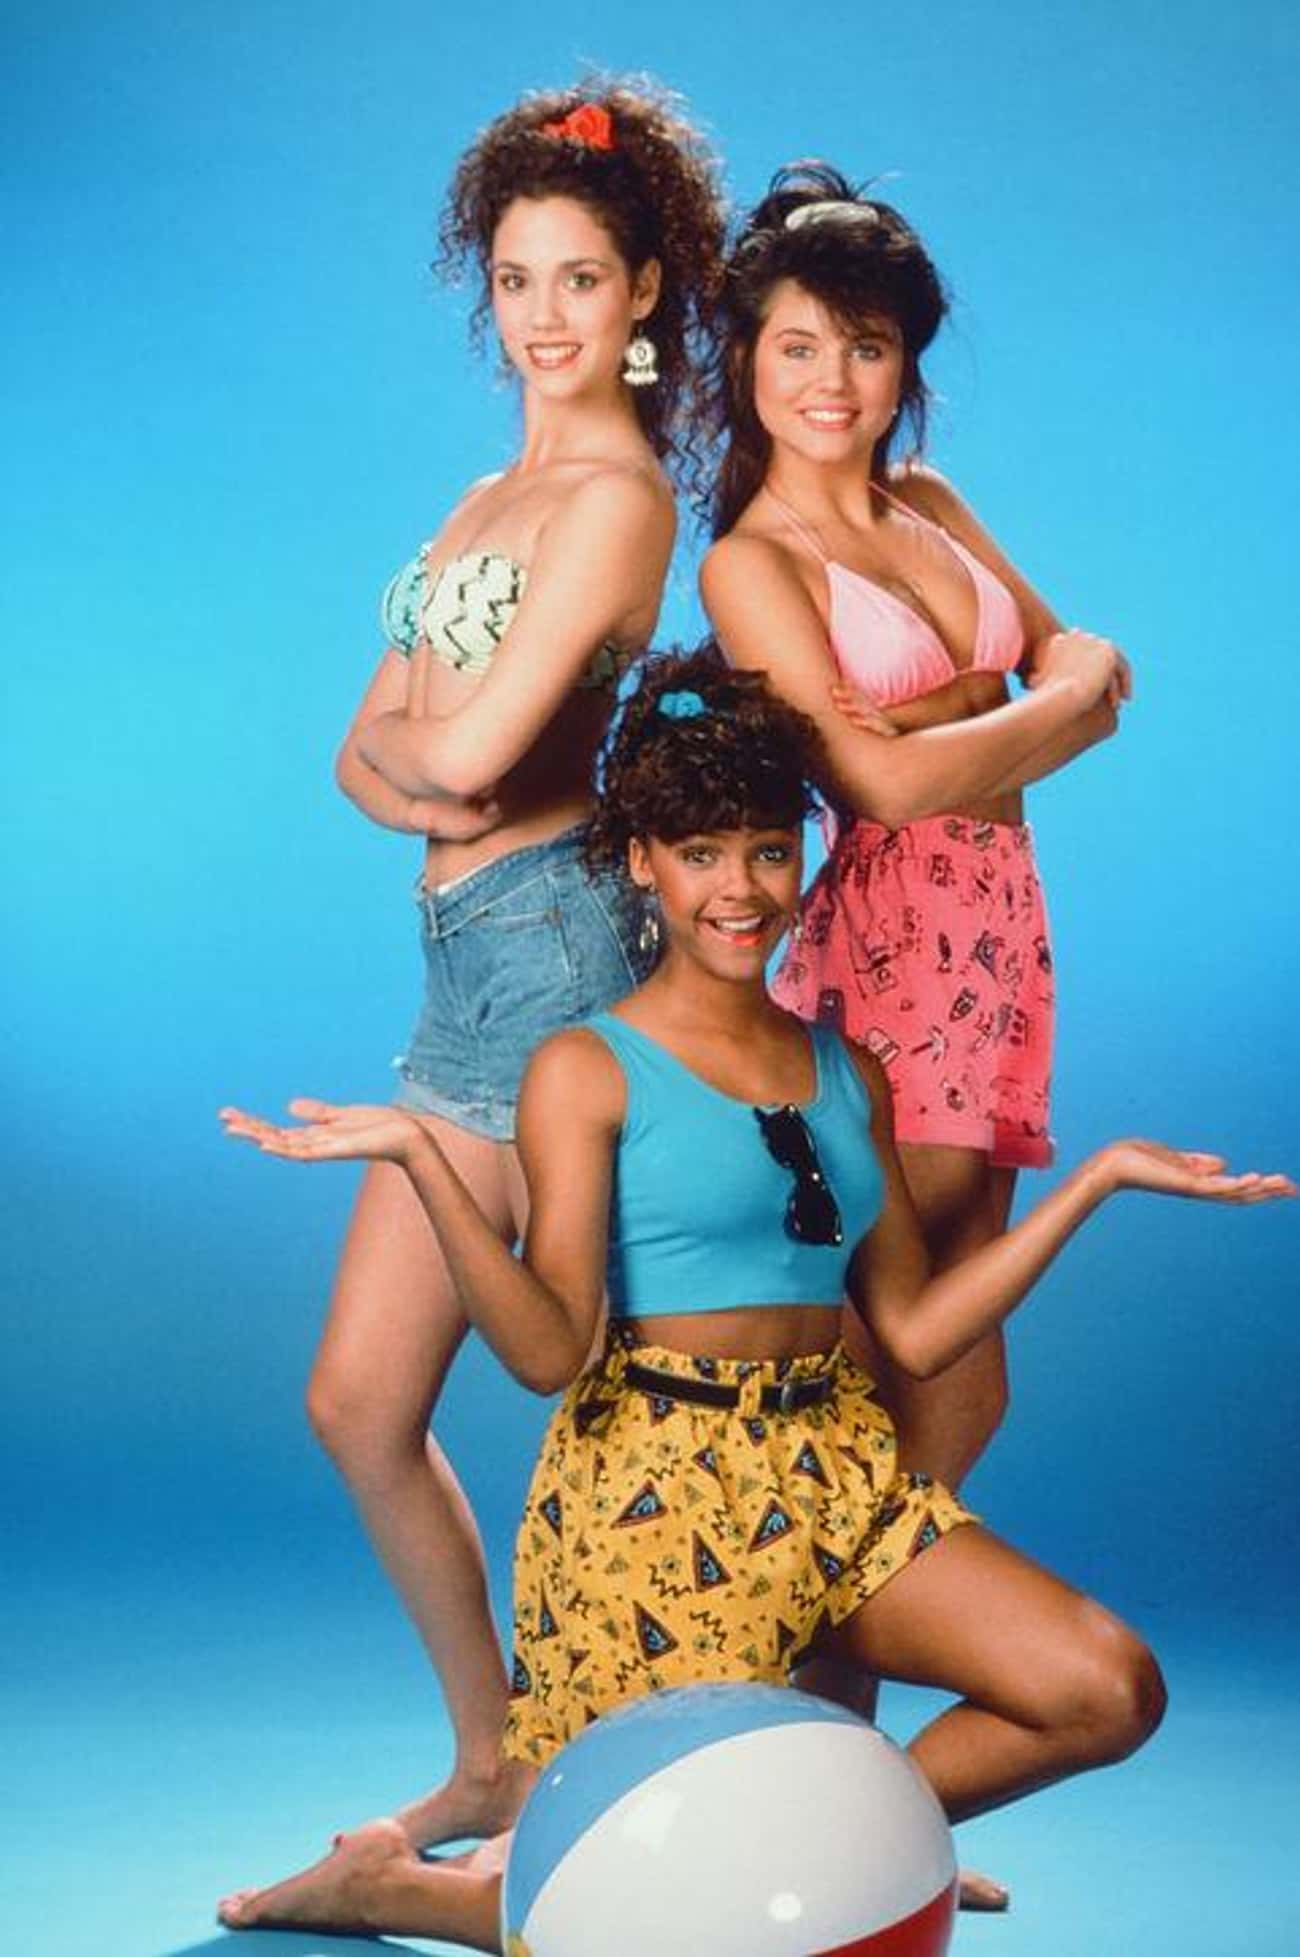 Kelly Kapowski, Lisa Turtle &  is listed (or ranked) 3 on the list The Greatest Sets of BFFs in All of '90s TV